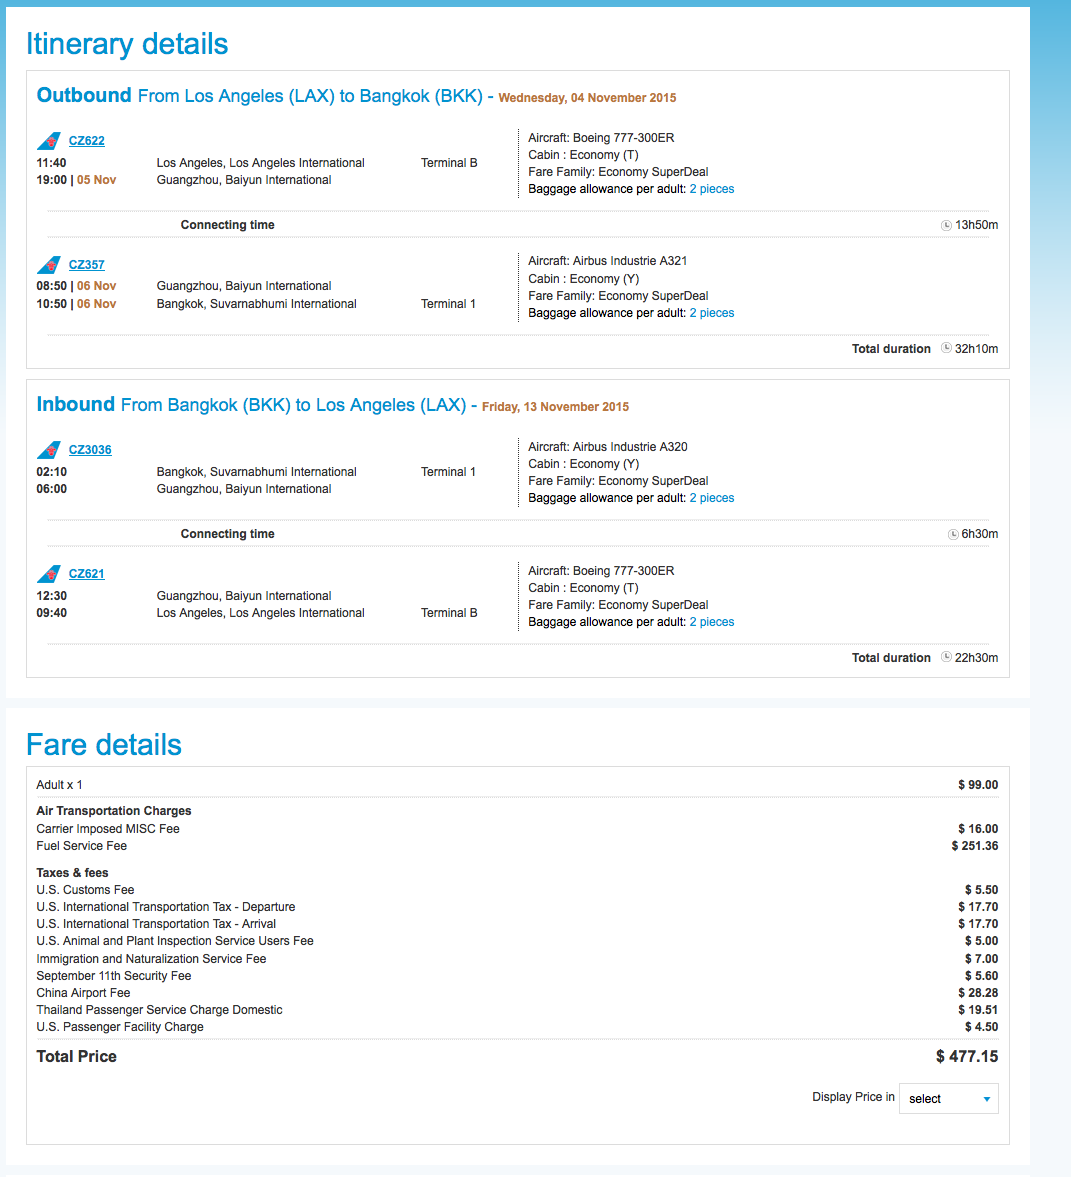 RT @airfarewatchdog: Los Angeles LAX to Bangkok, Thailand BKK $478 roundtrip for fall travel